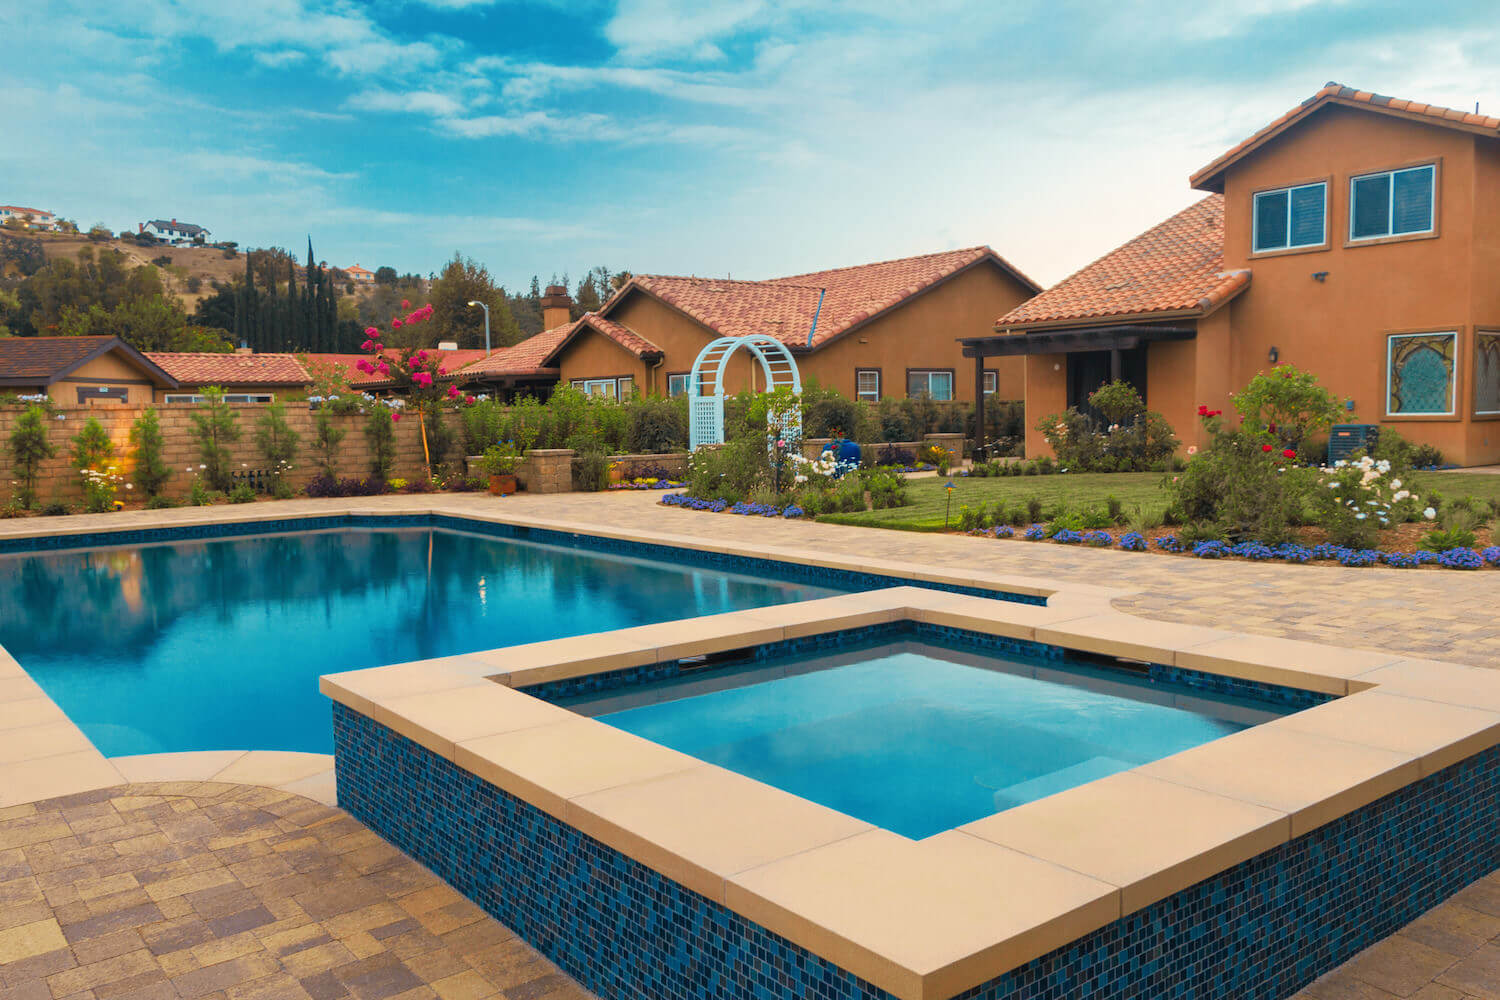 Elegant Pool #6 by Southern California Pools